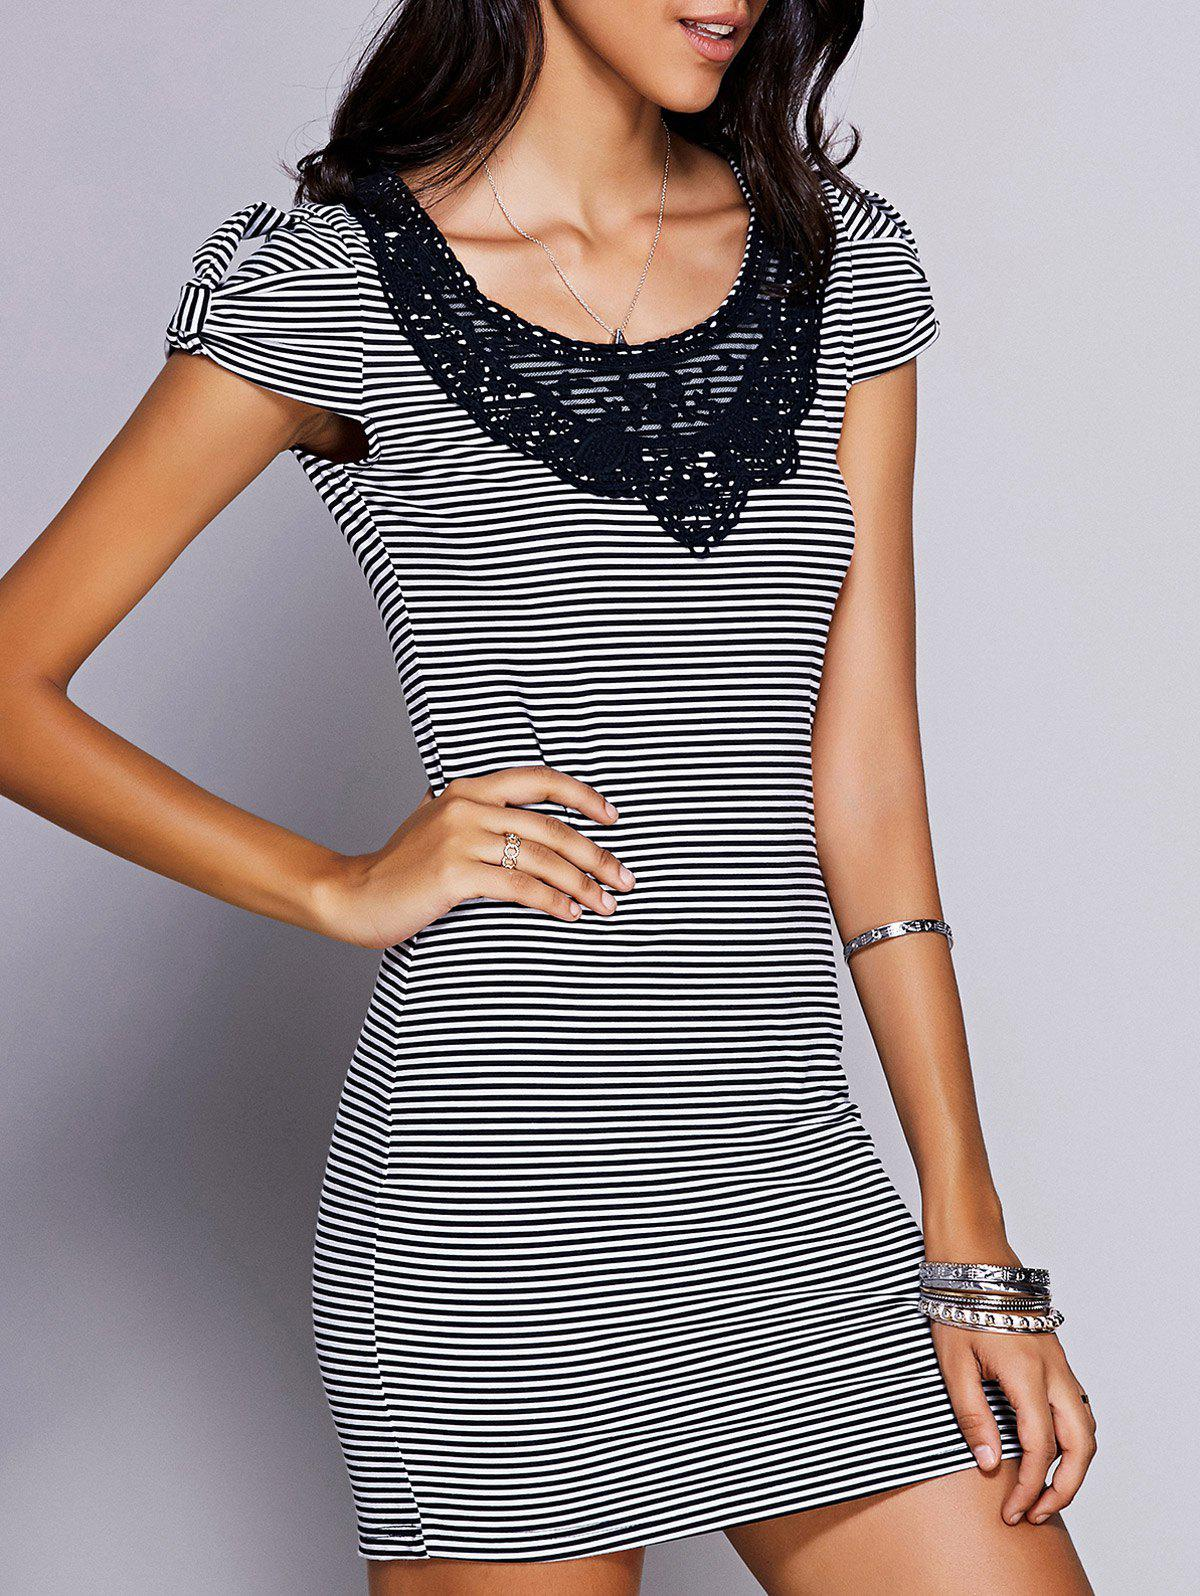 Stylish Women's Scoop Neck Lace Panelled Striped Dress - BLACK L